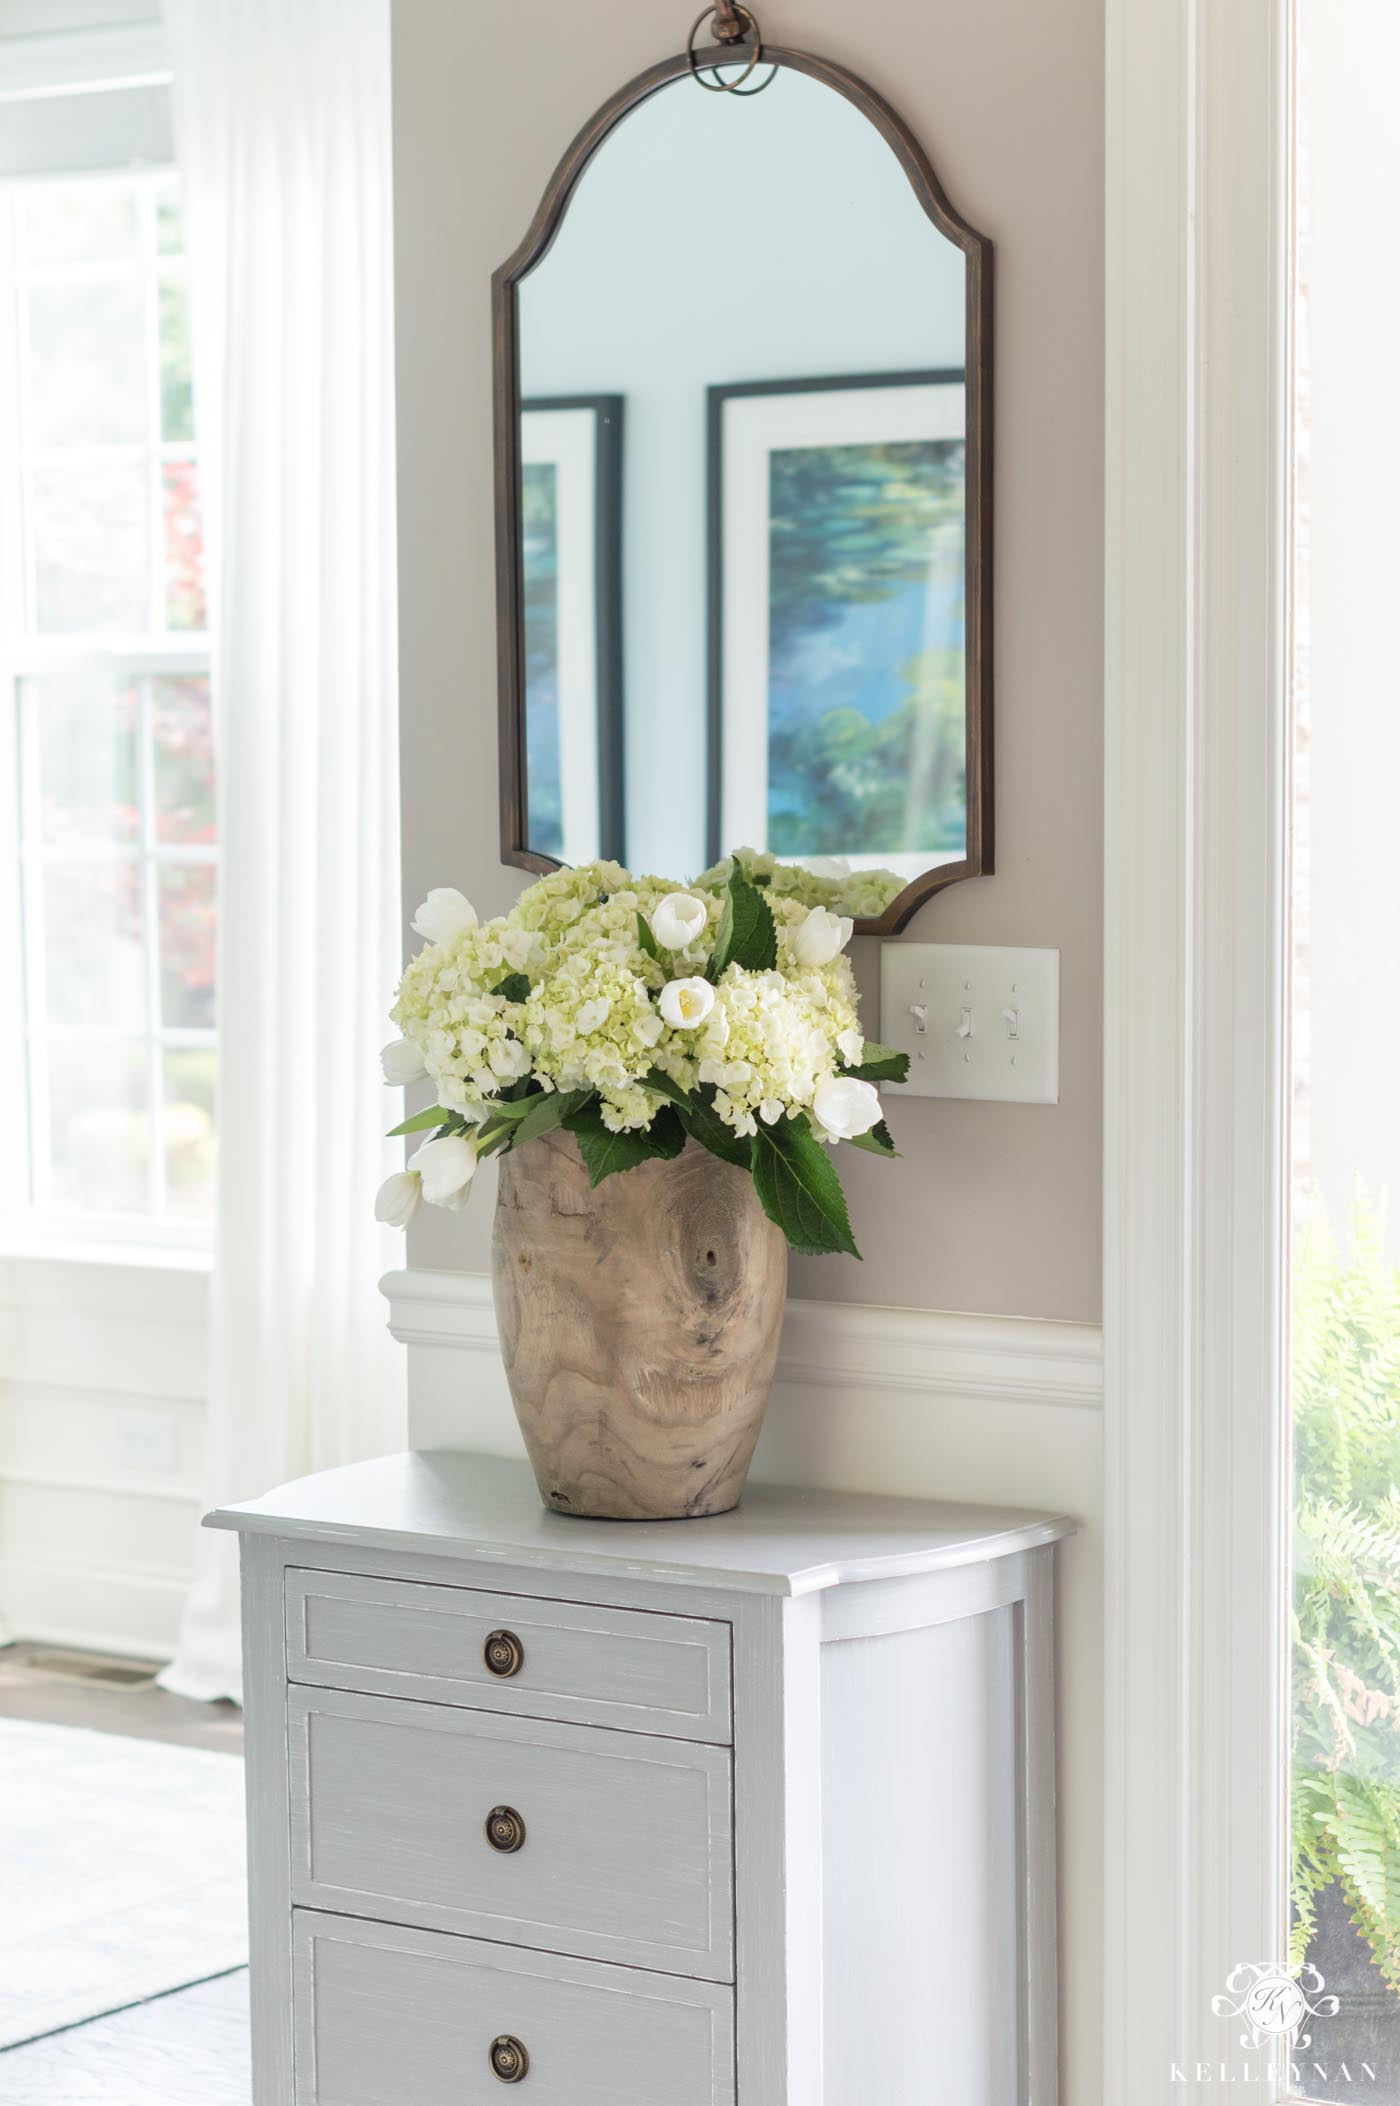 Affordable Entry Decor and Inexpensive Furniture